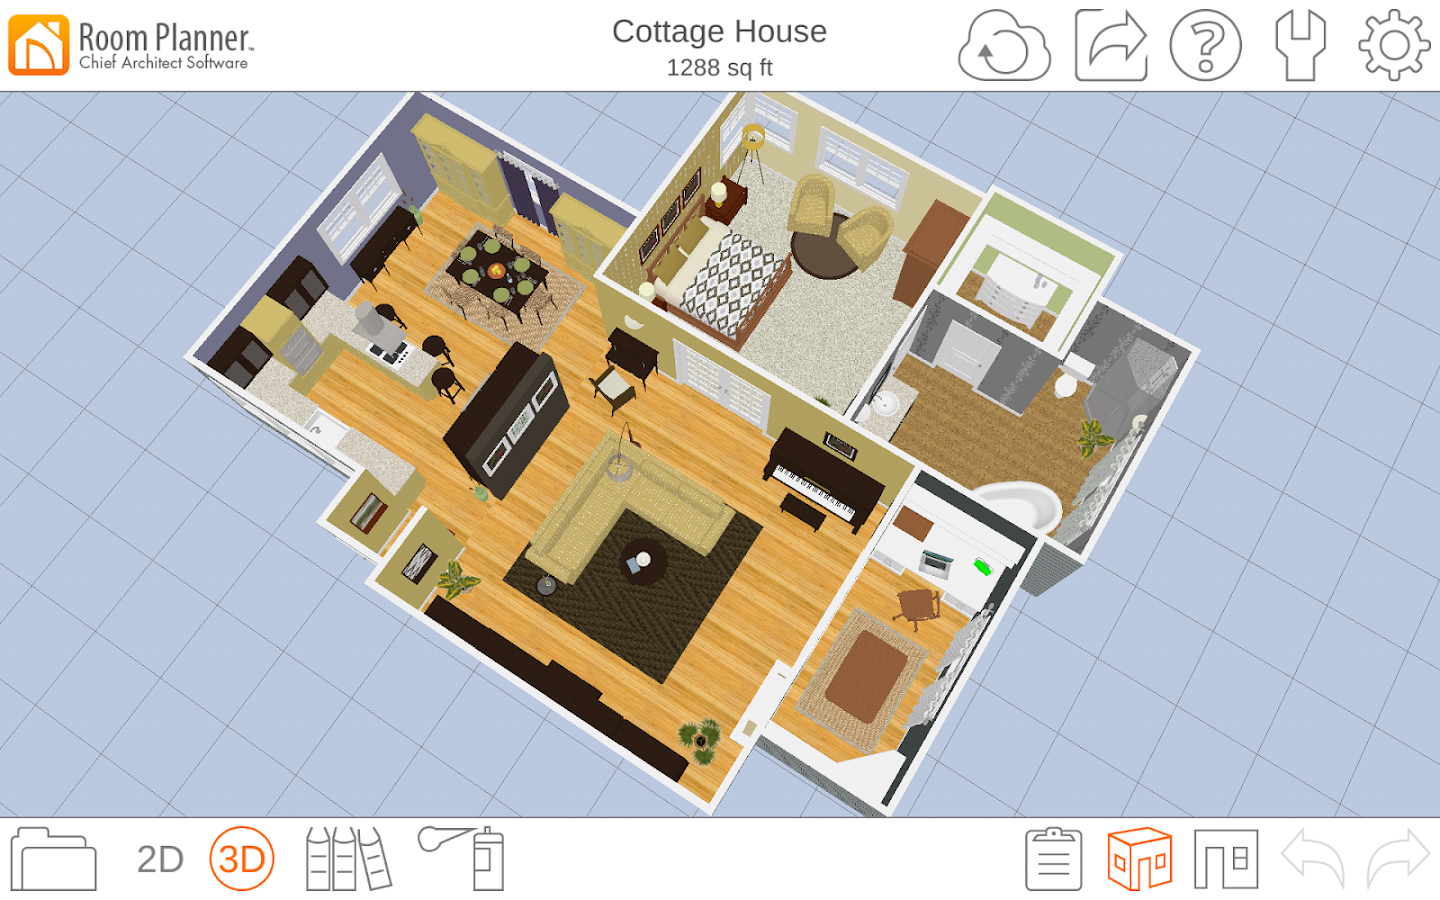 Room planner home design android apps on google play Best room planner app